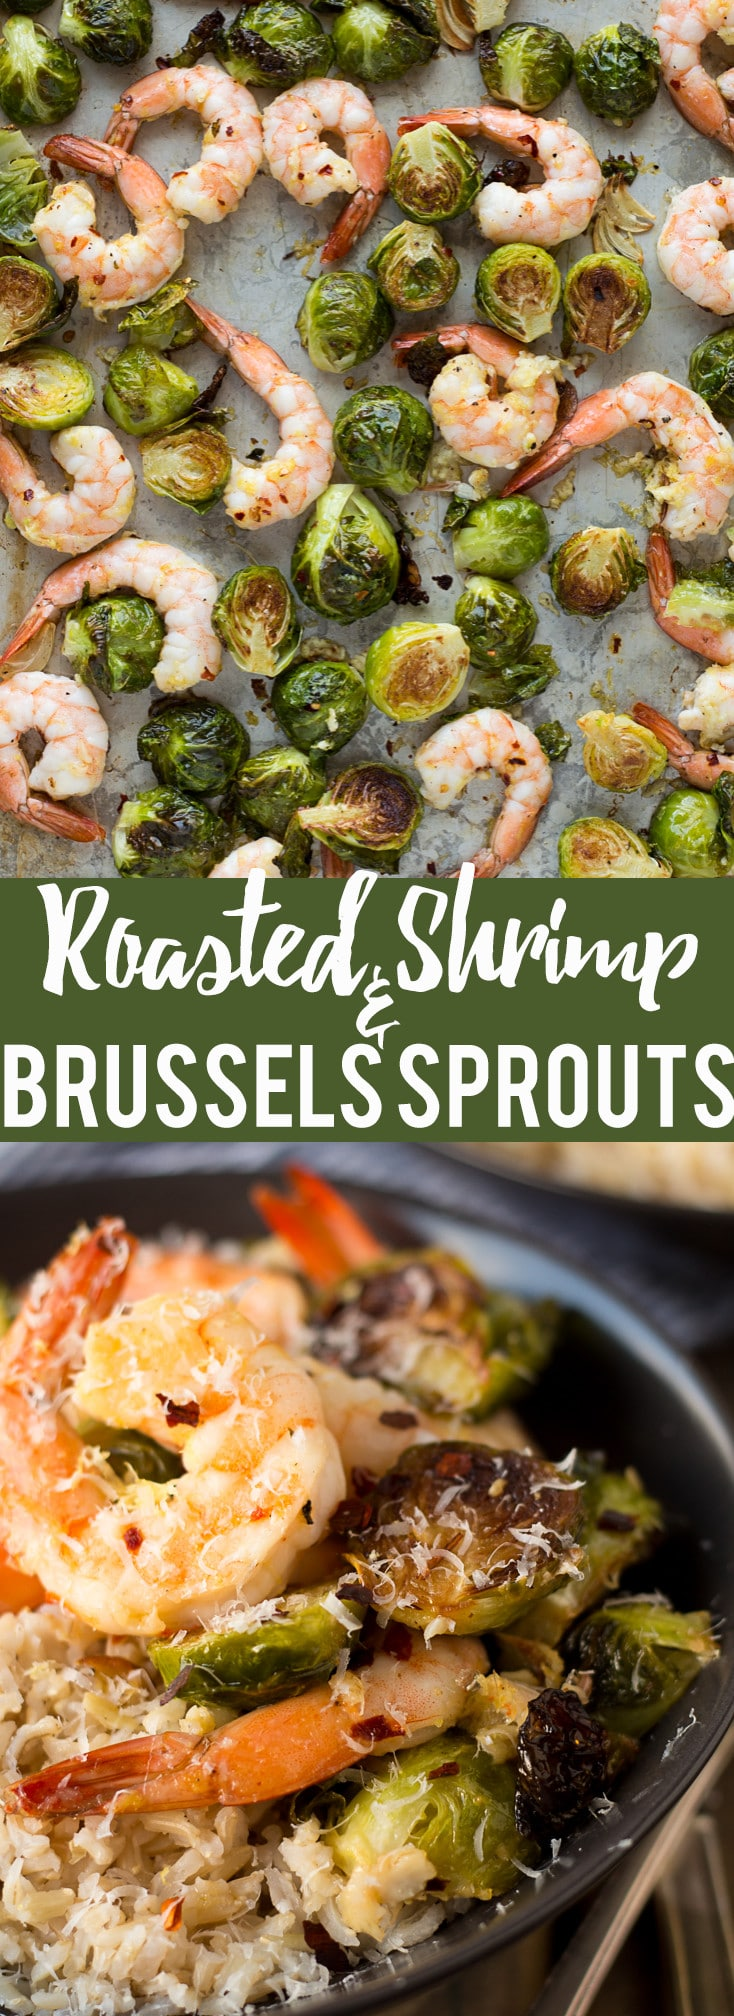 These Roasted Shrimp and Brussels Sprouts are a quick and easy dinner. Lemon and garlic make this a flavorful sheet pan dinner you can make in about 20 minutes!